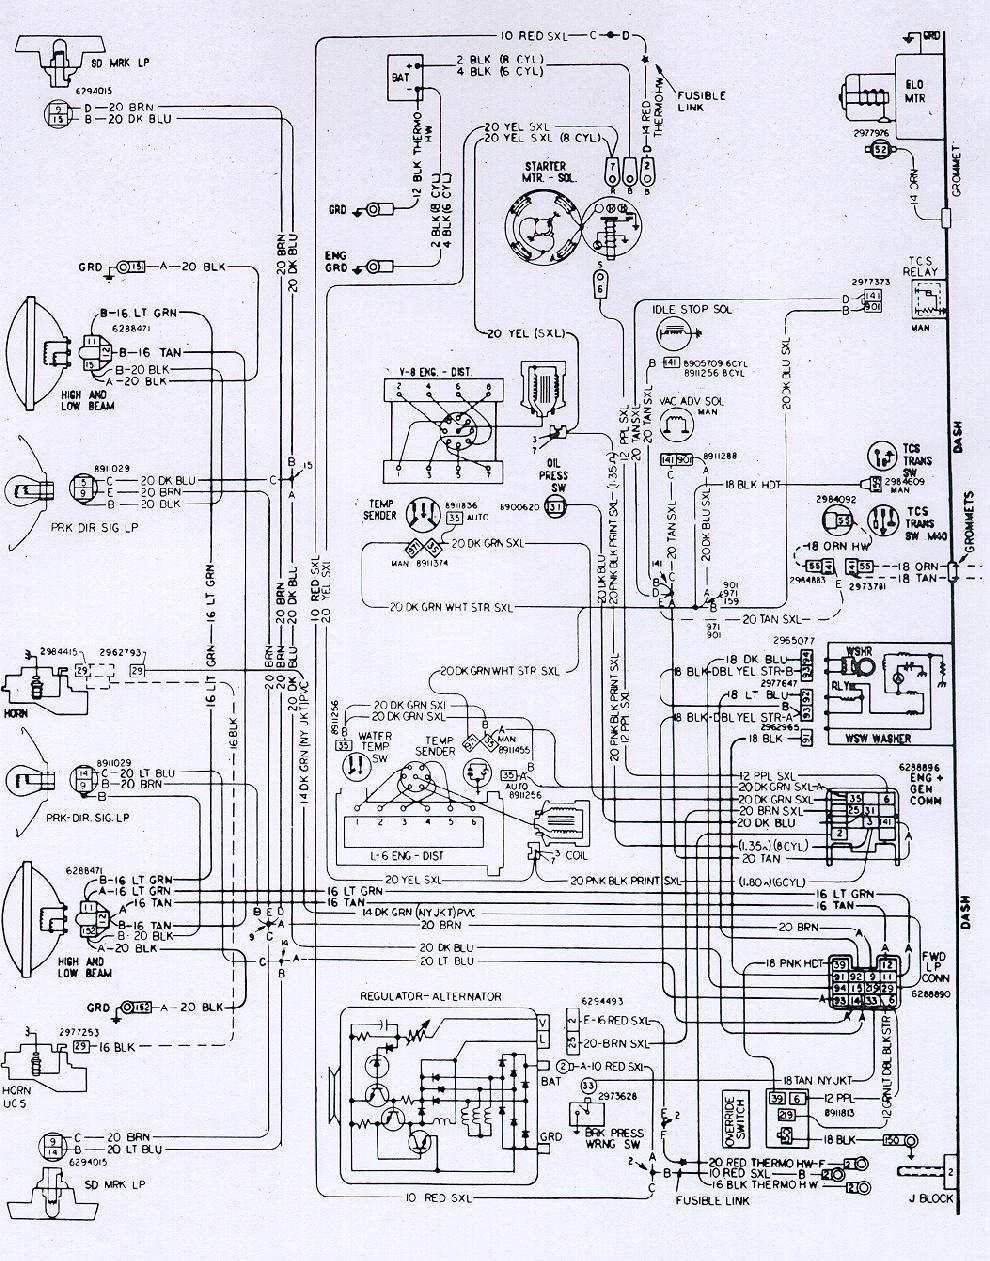 medium resolution of 1980 trans am engine electrical diagram box wiring diagram1980 trans am engine electrical diagram wiring library